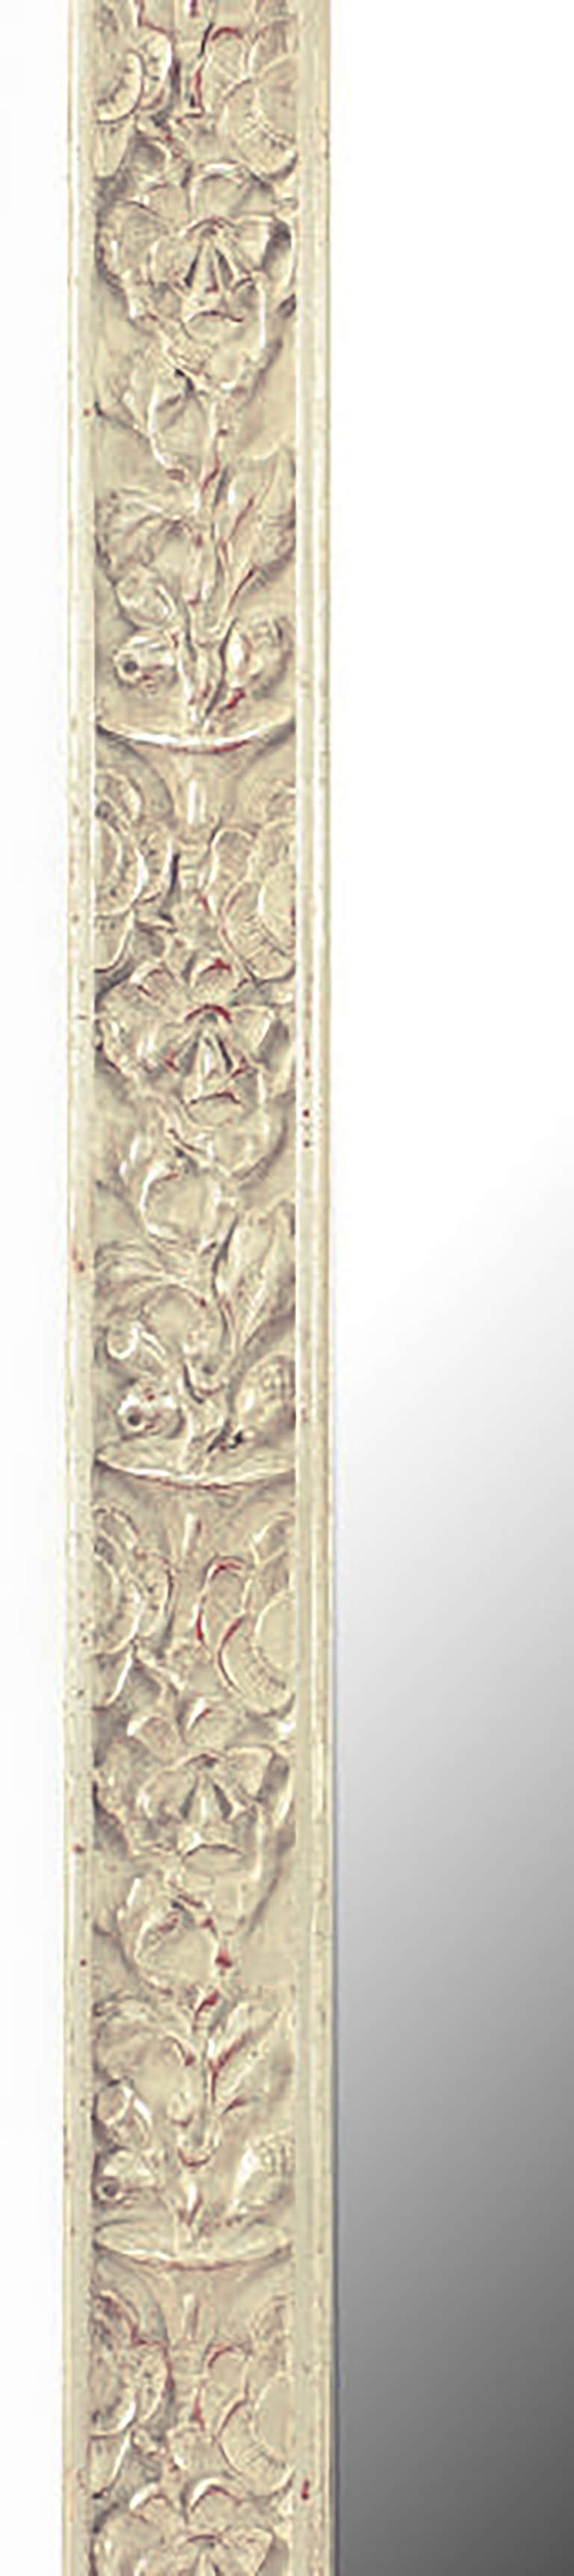 Art Deco Carved and Silver-Leafed Wood Mirror In Good Condition For Sale In Chicago, IL